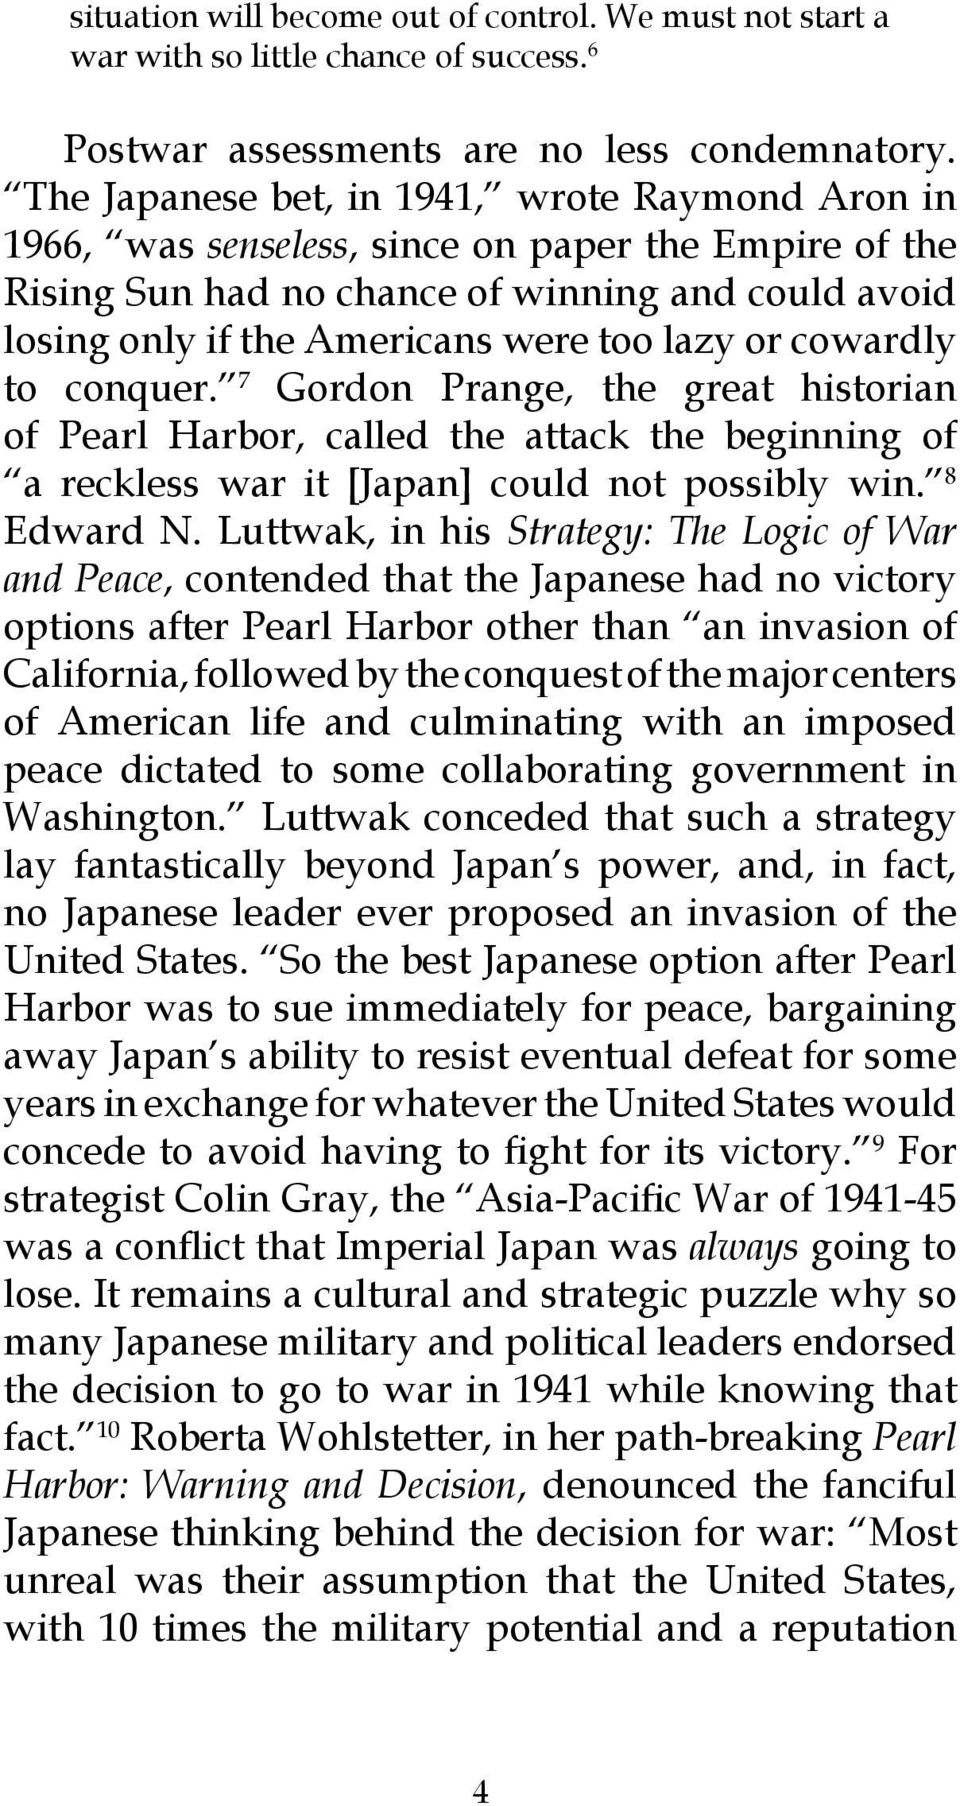 or cowardly to conquer. 7 Gordon Prange, the great historian of Pearl Harbor, called the attack the beginning of a reckless war it [Japan] could not possibly win. 8 Edward N.